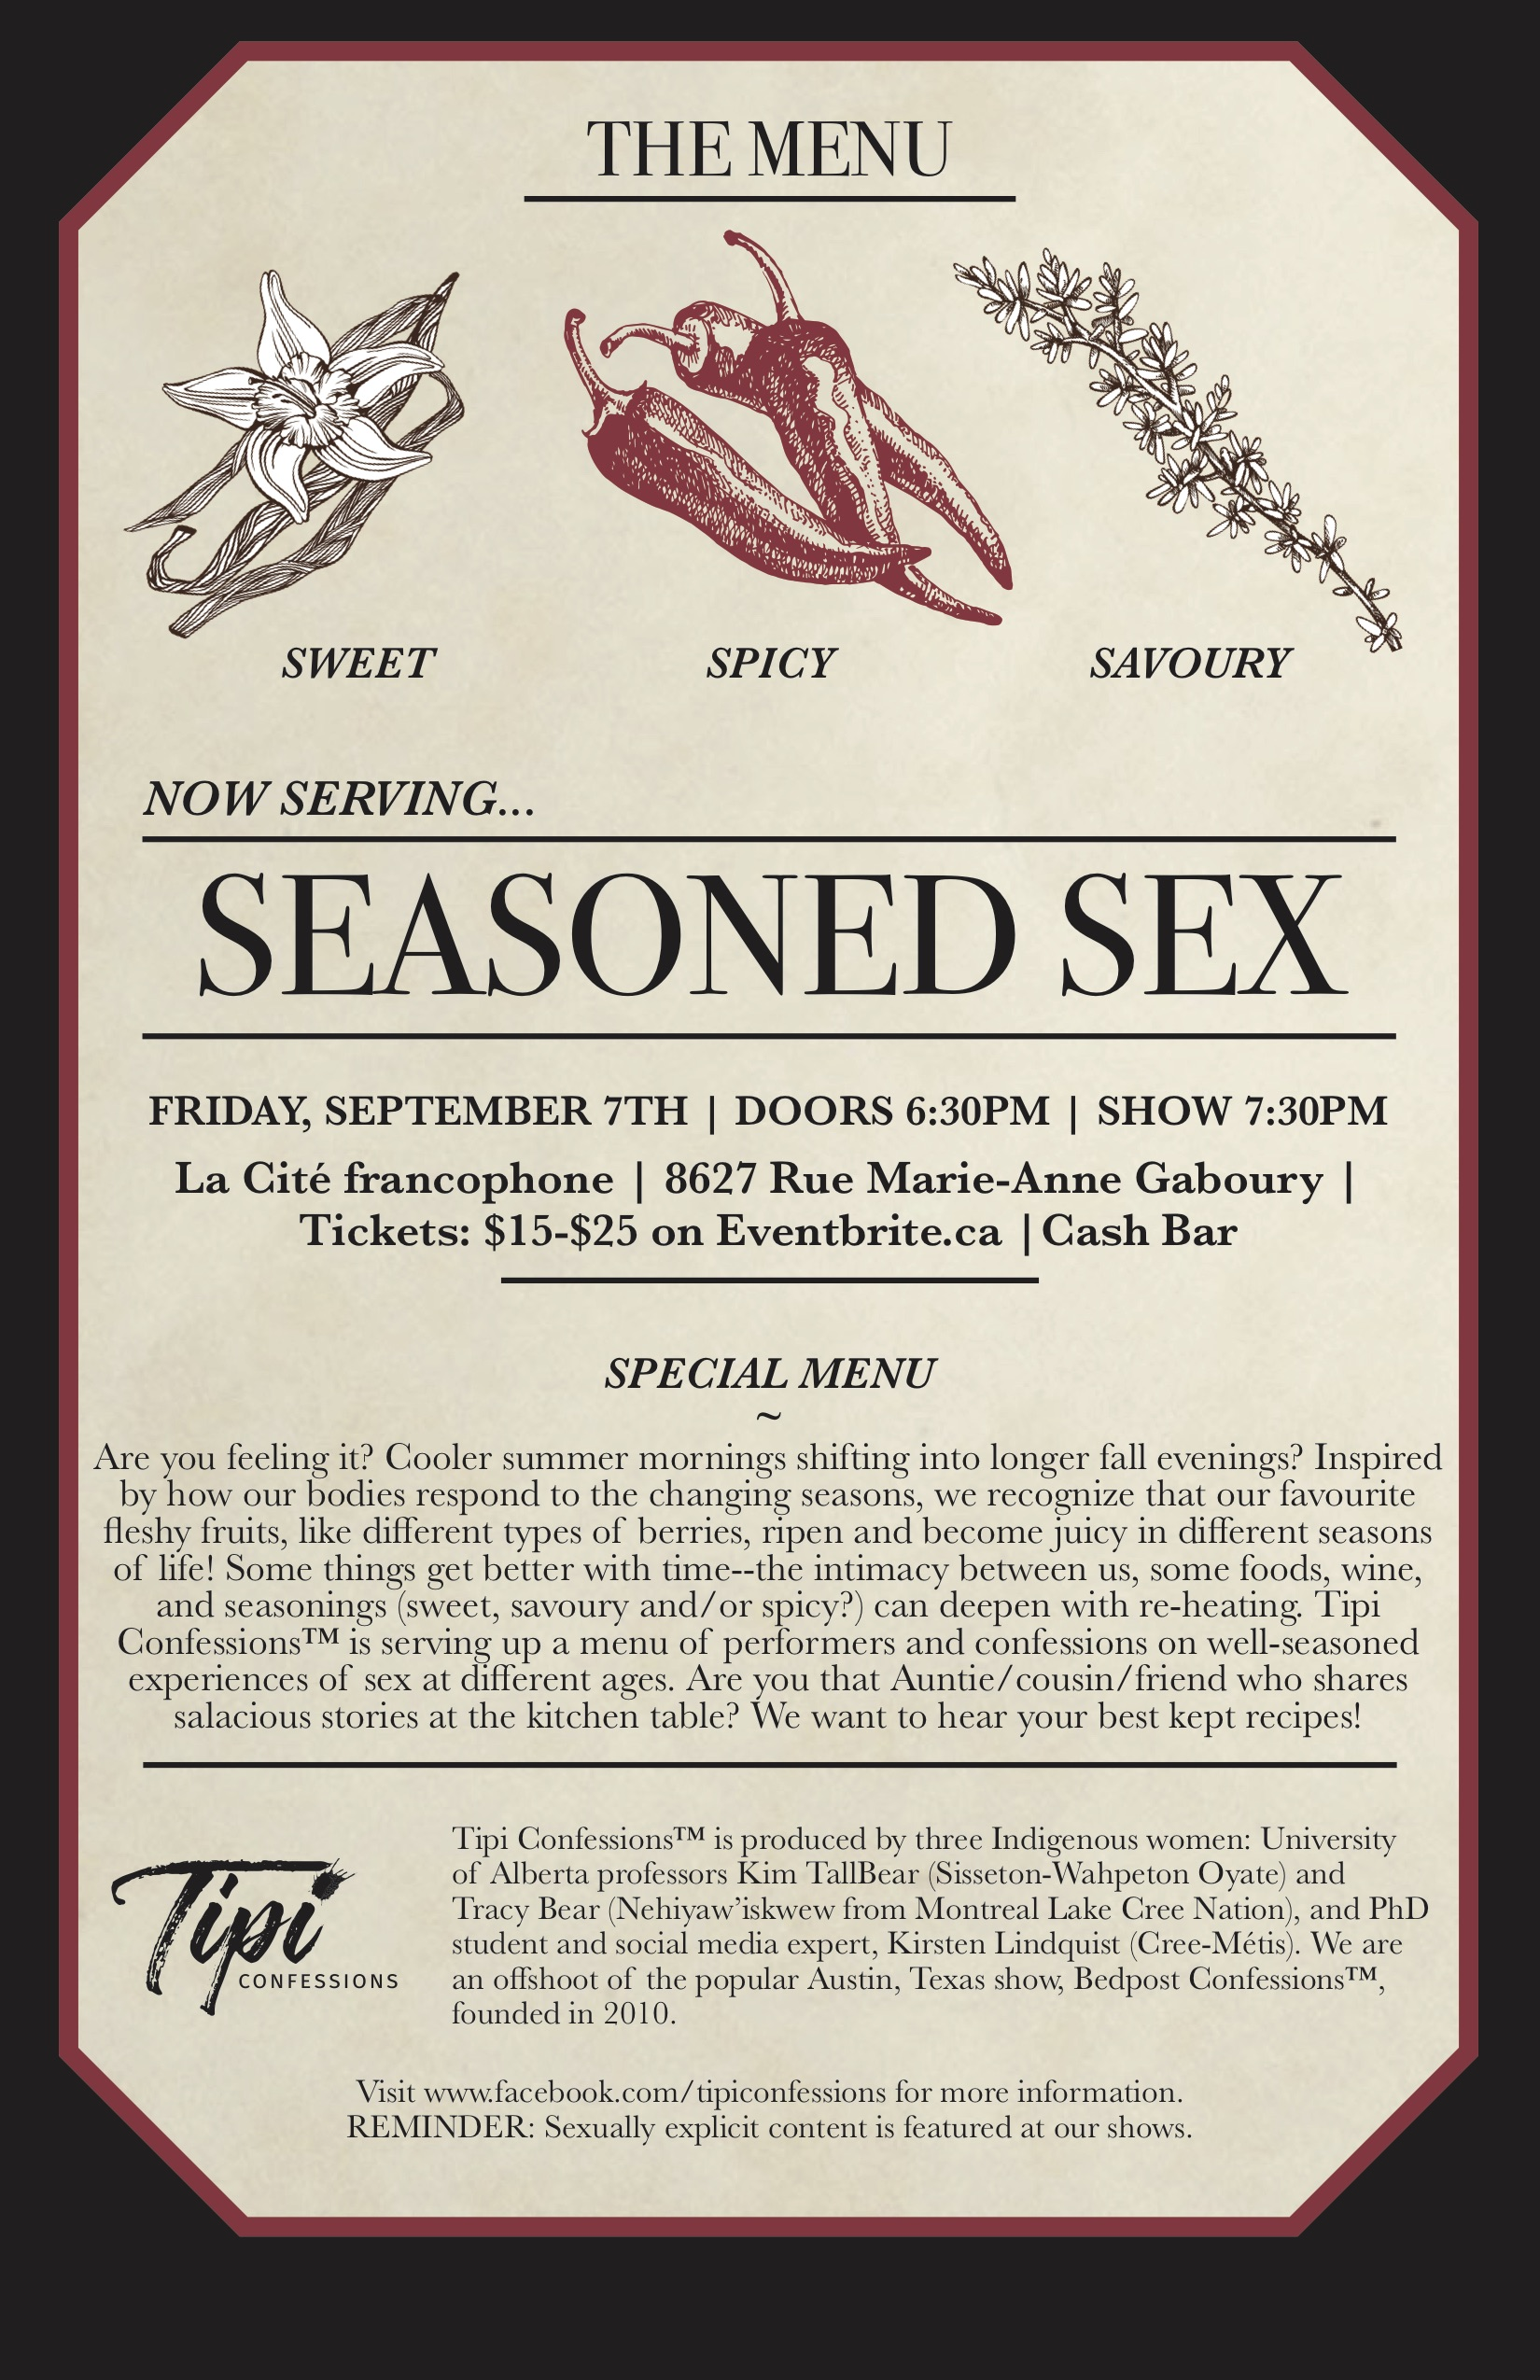 Seasoned Sex